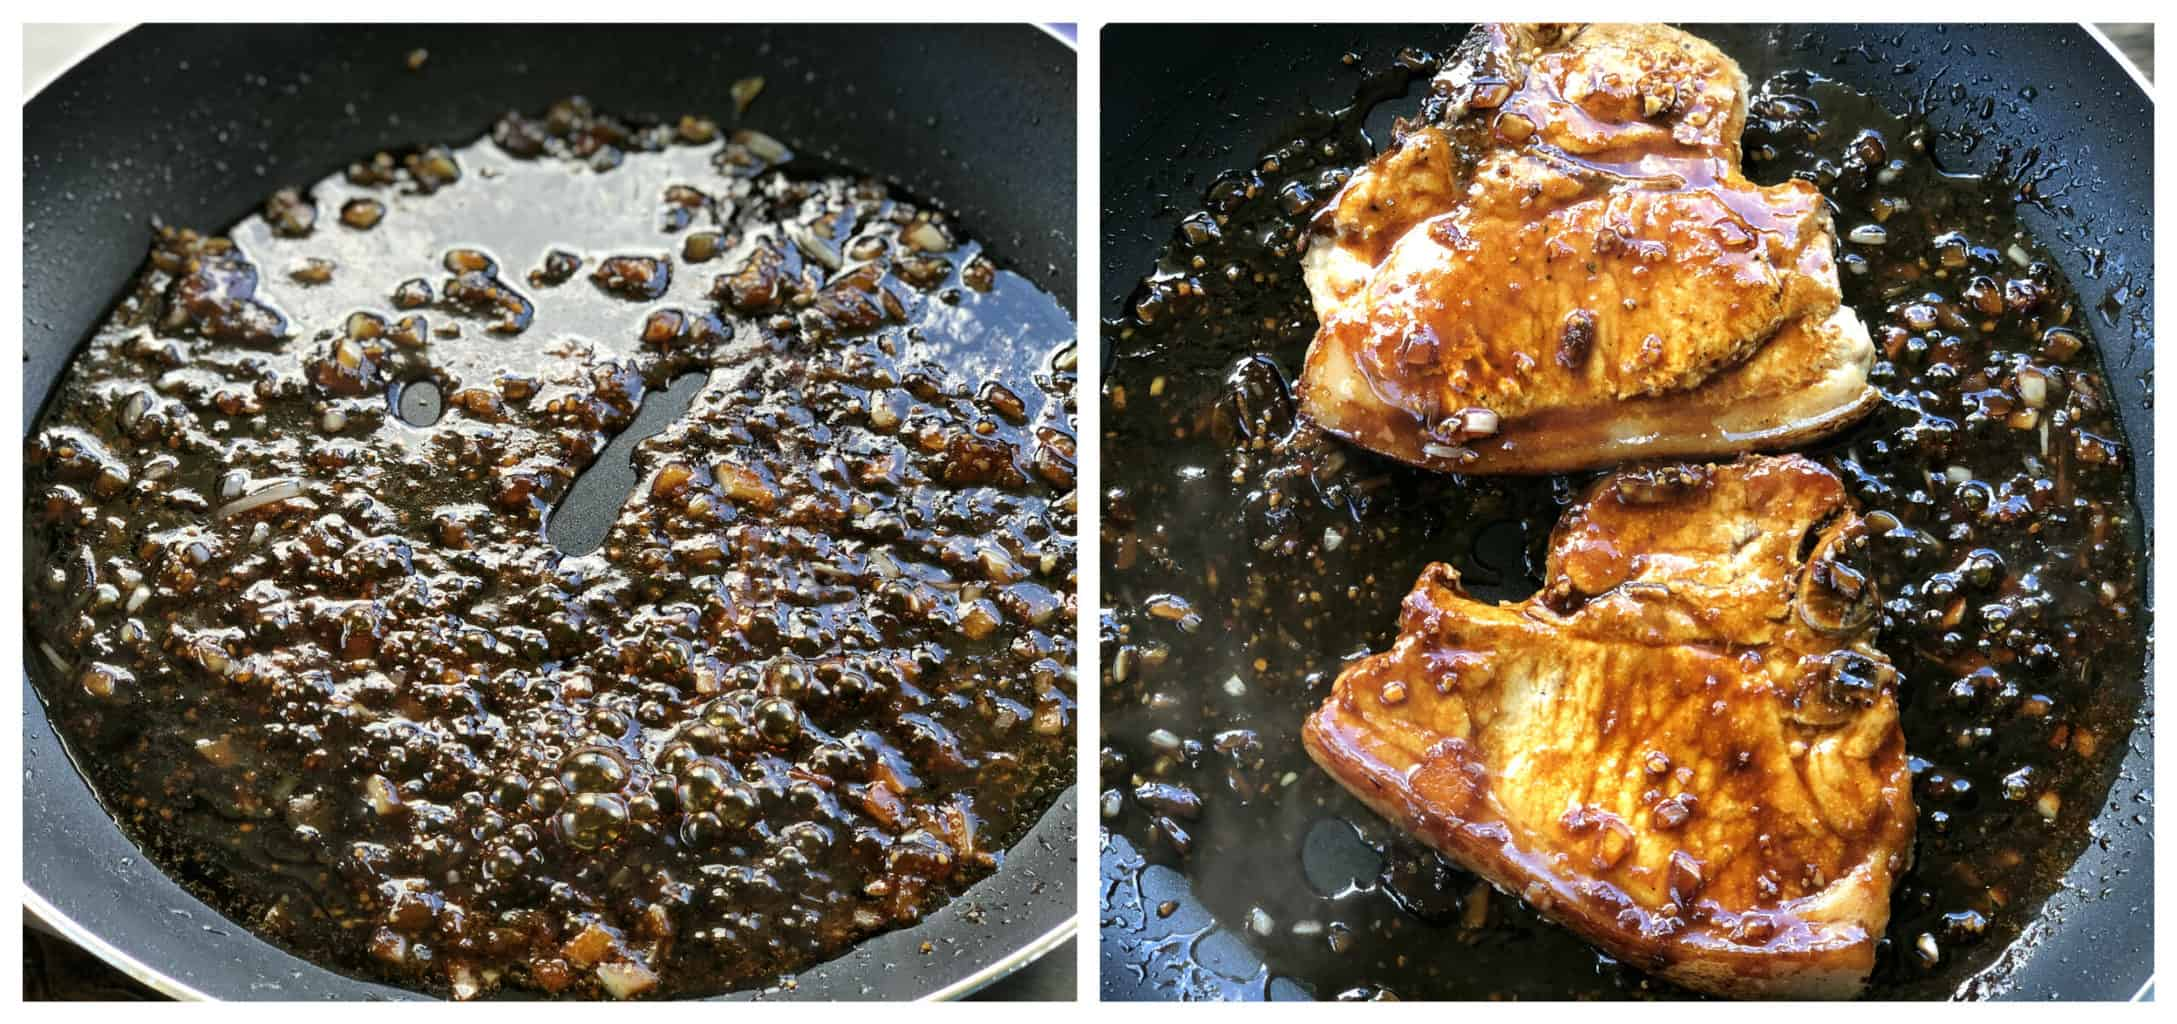 Apricot & Soy Sauce Glaze for Pork Chops in a frying pan bubbling